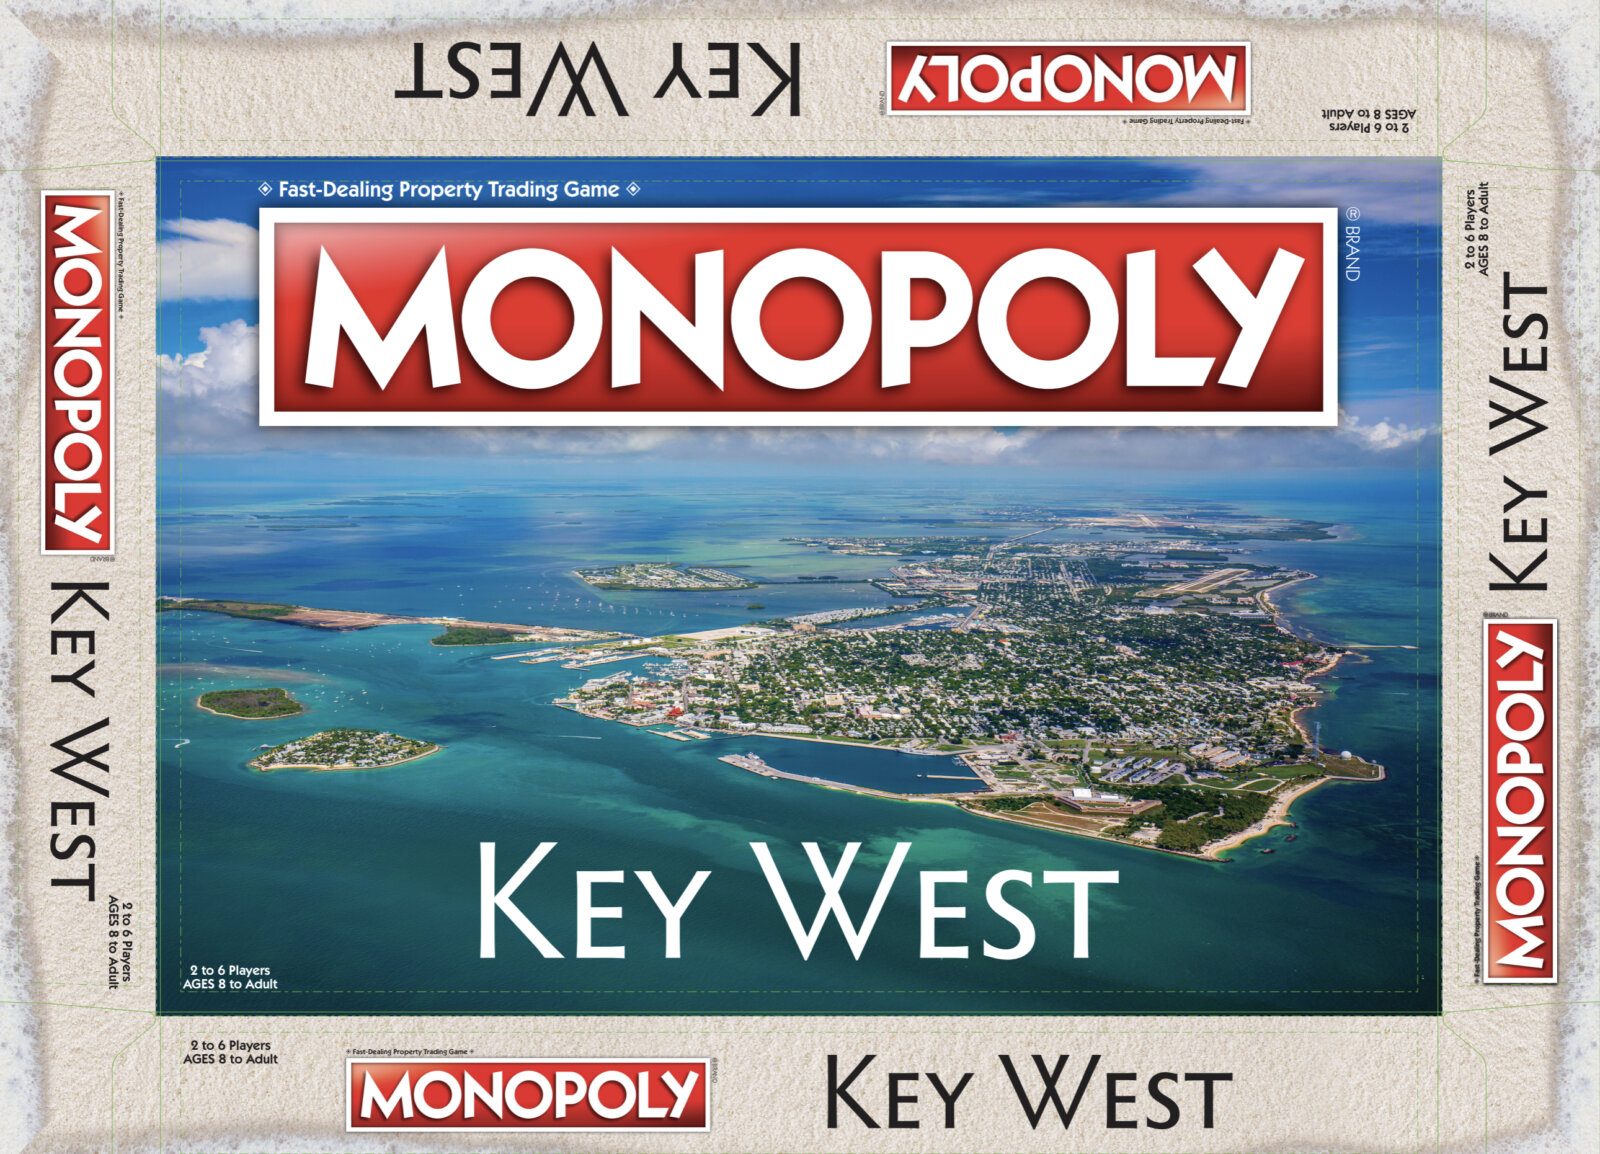 Unique Things to Do in Key West: MiamiCurated